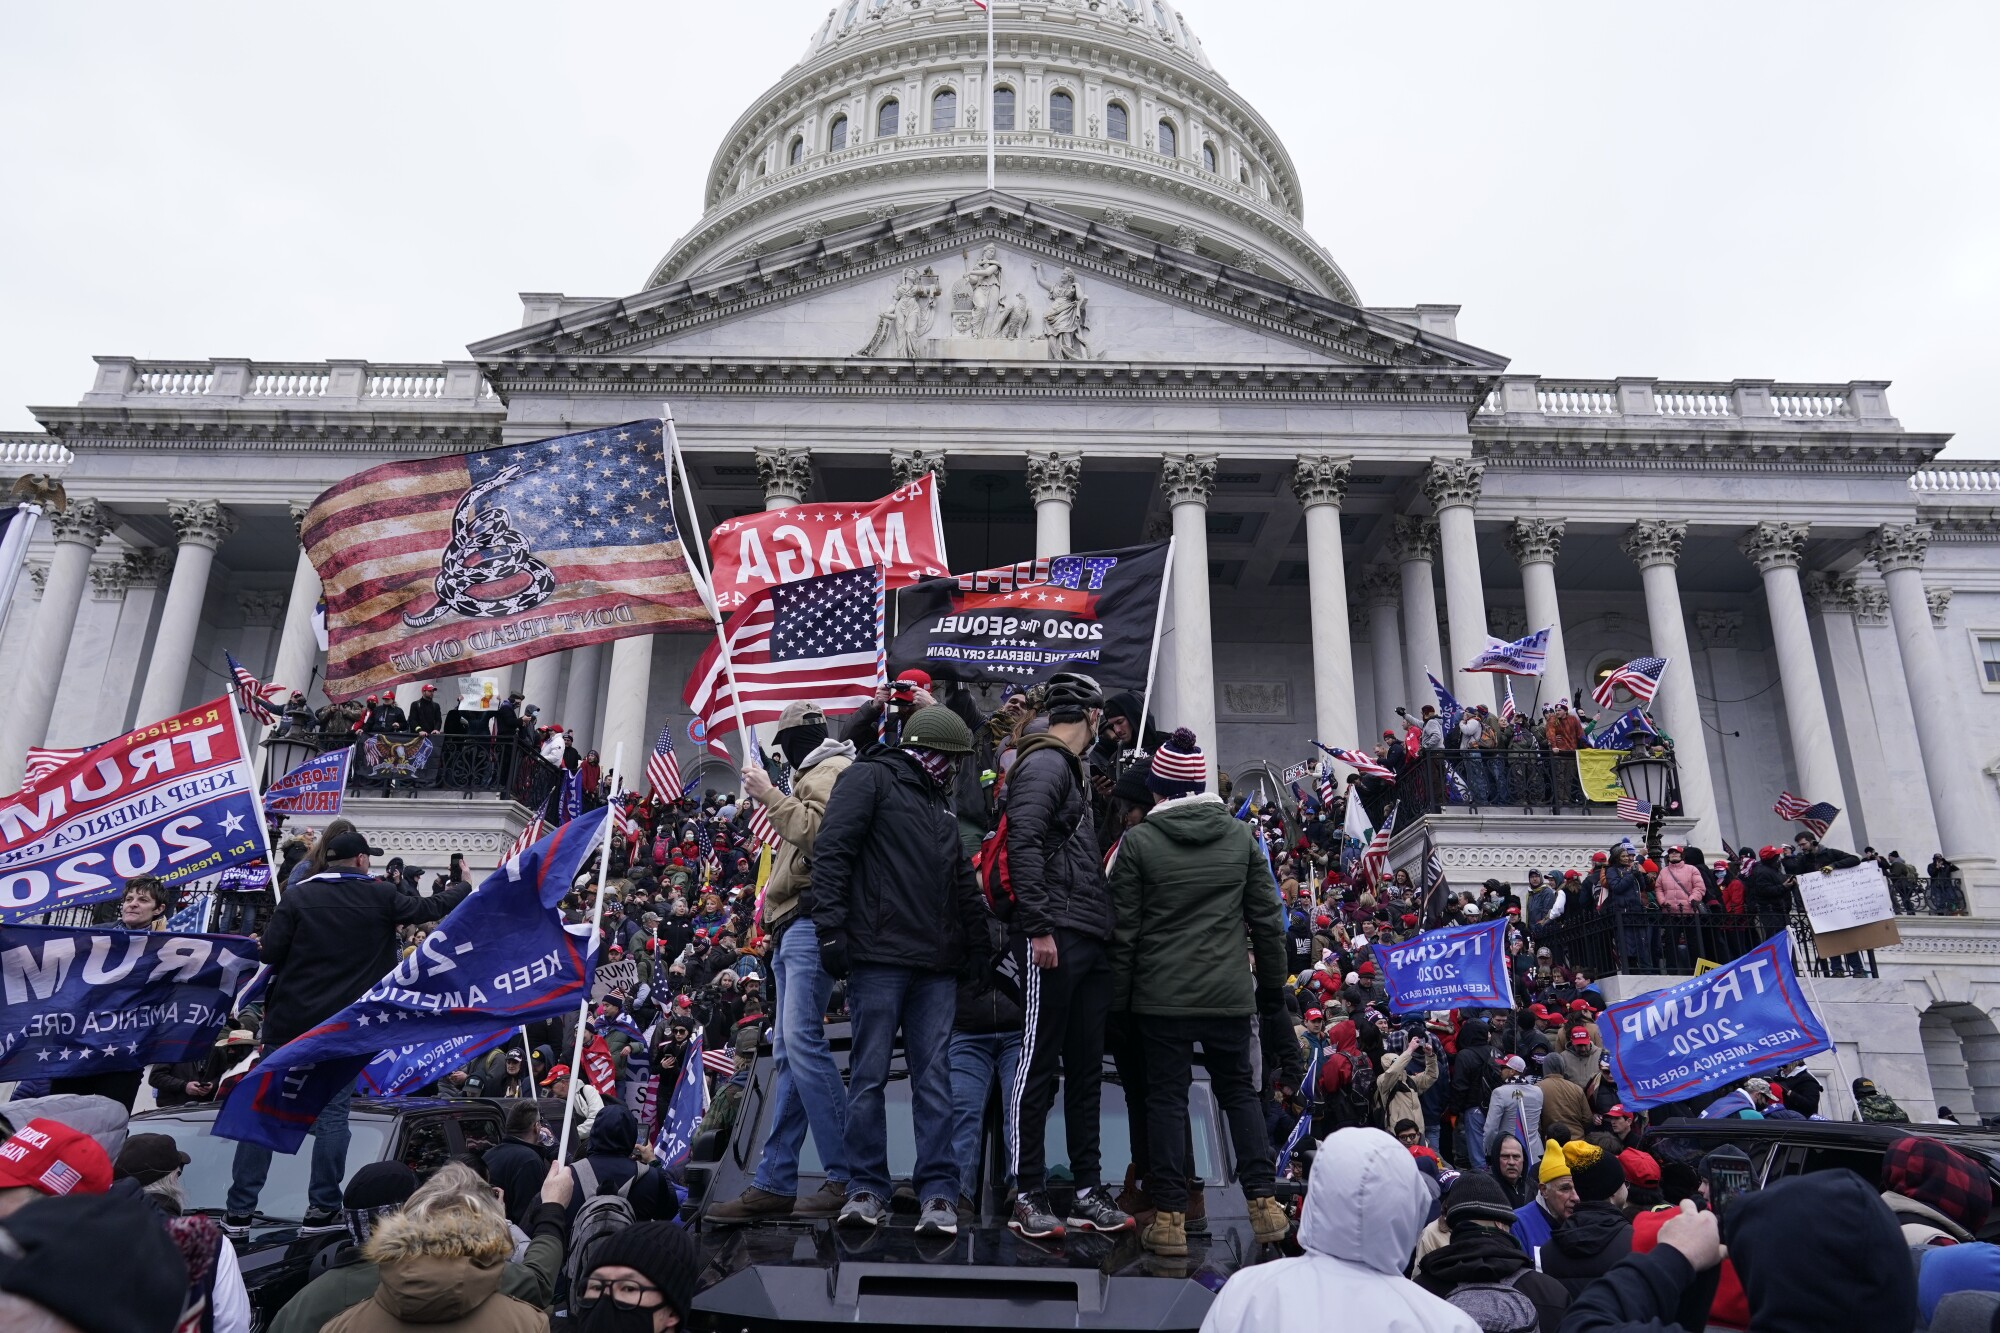 A crowd of people with Trump 2020 and MAGA flags stand on an armored police vehicle and the Capitol steps